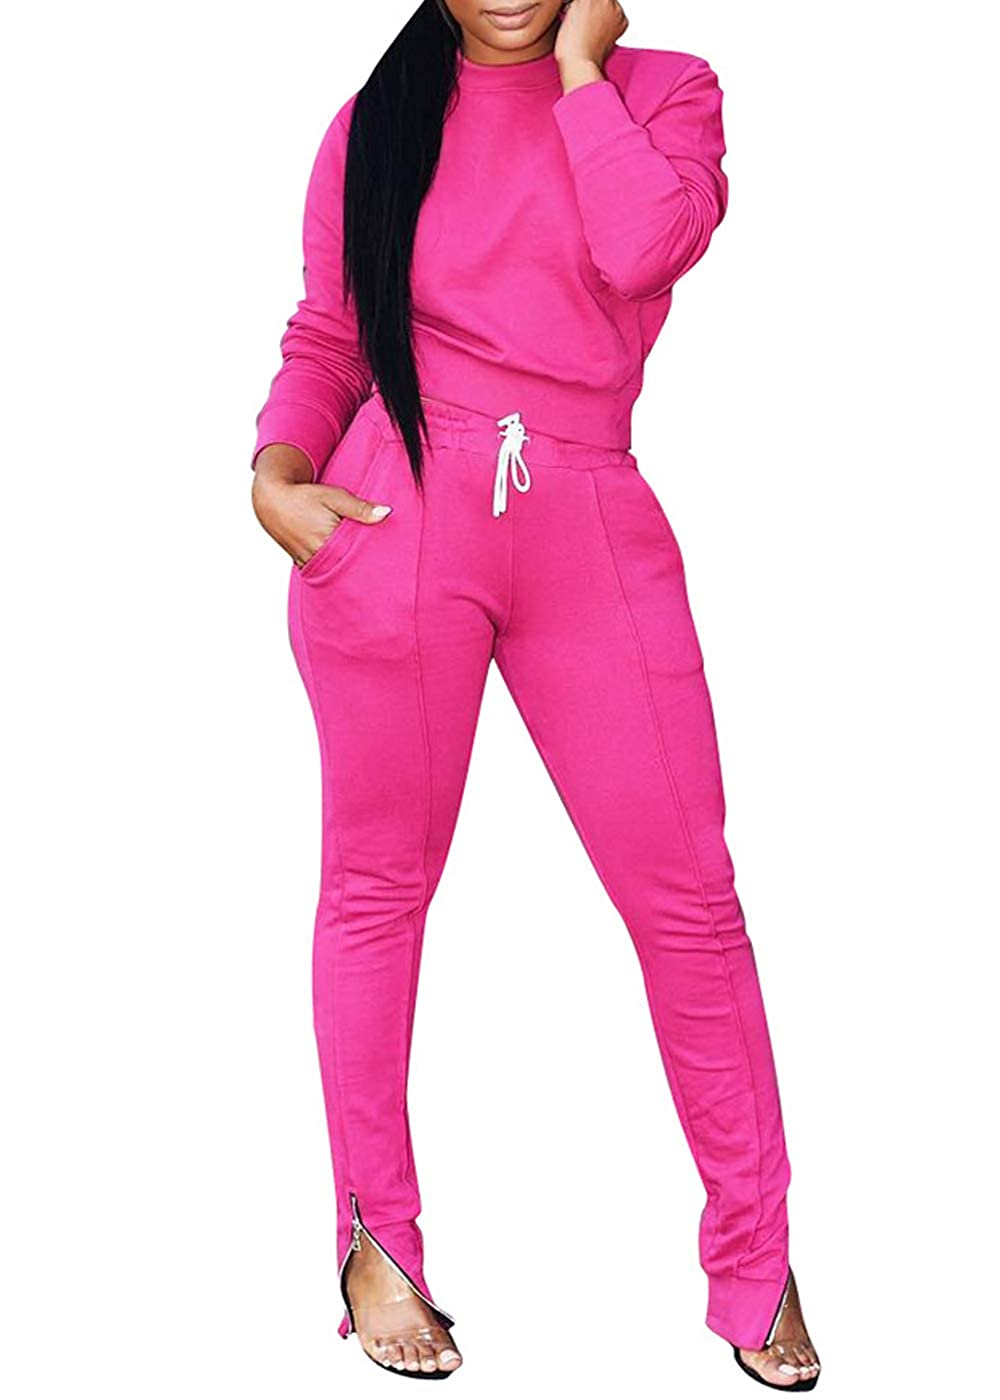 Solid Color 2 Piece Outfits Set for Women,Bodycon Pants Joggers Clubwear Tracksuit Sportswear Sweatsuit